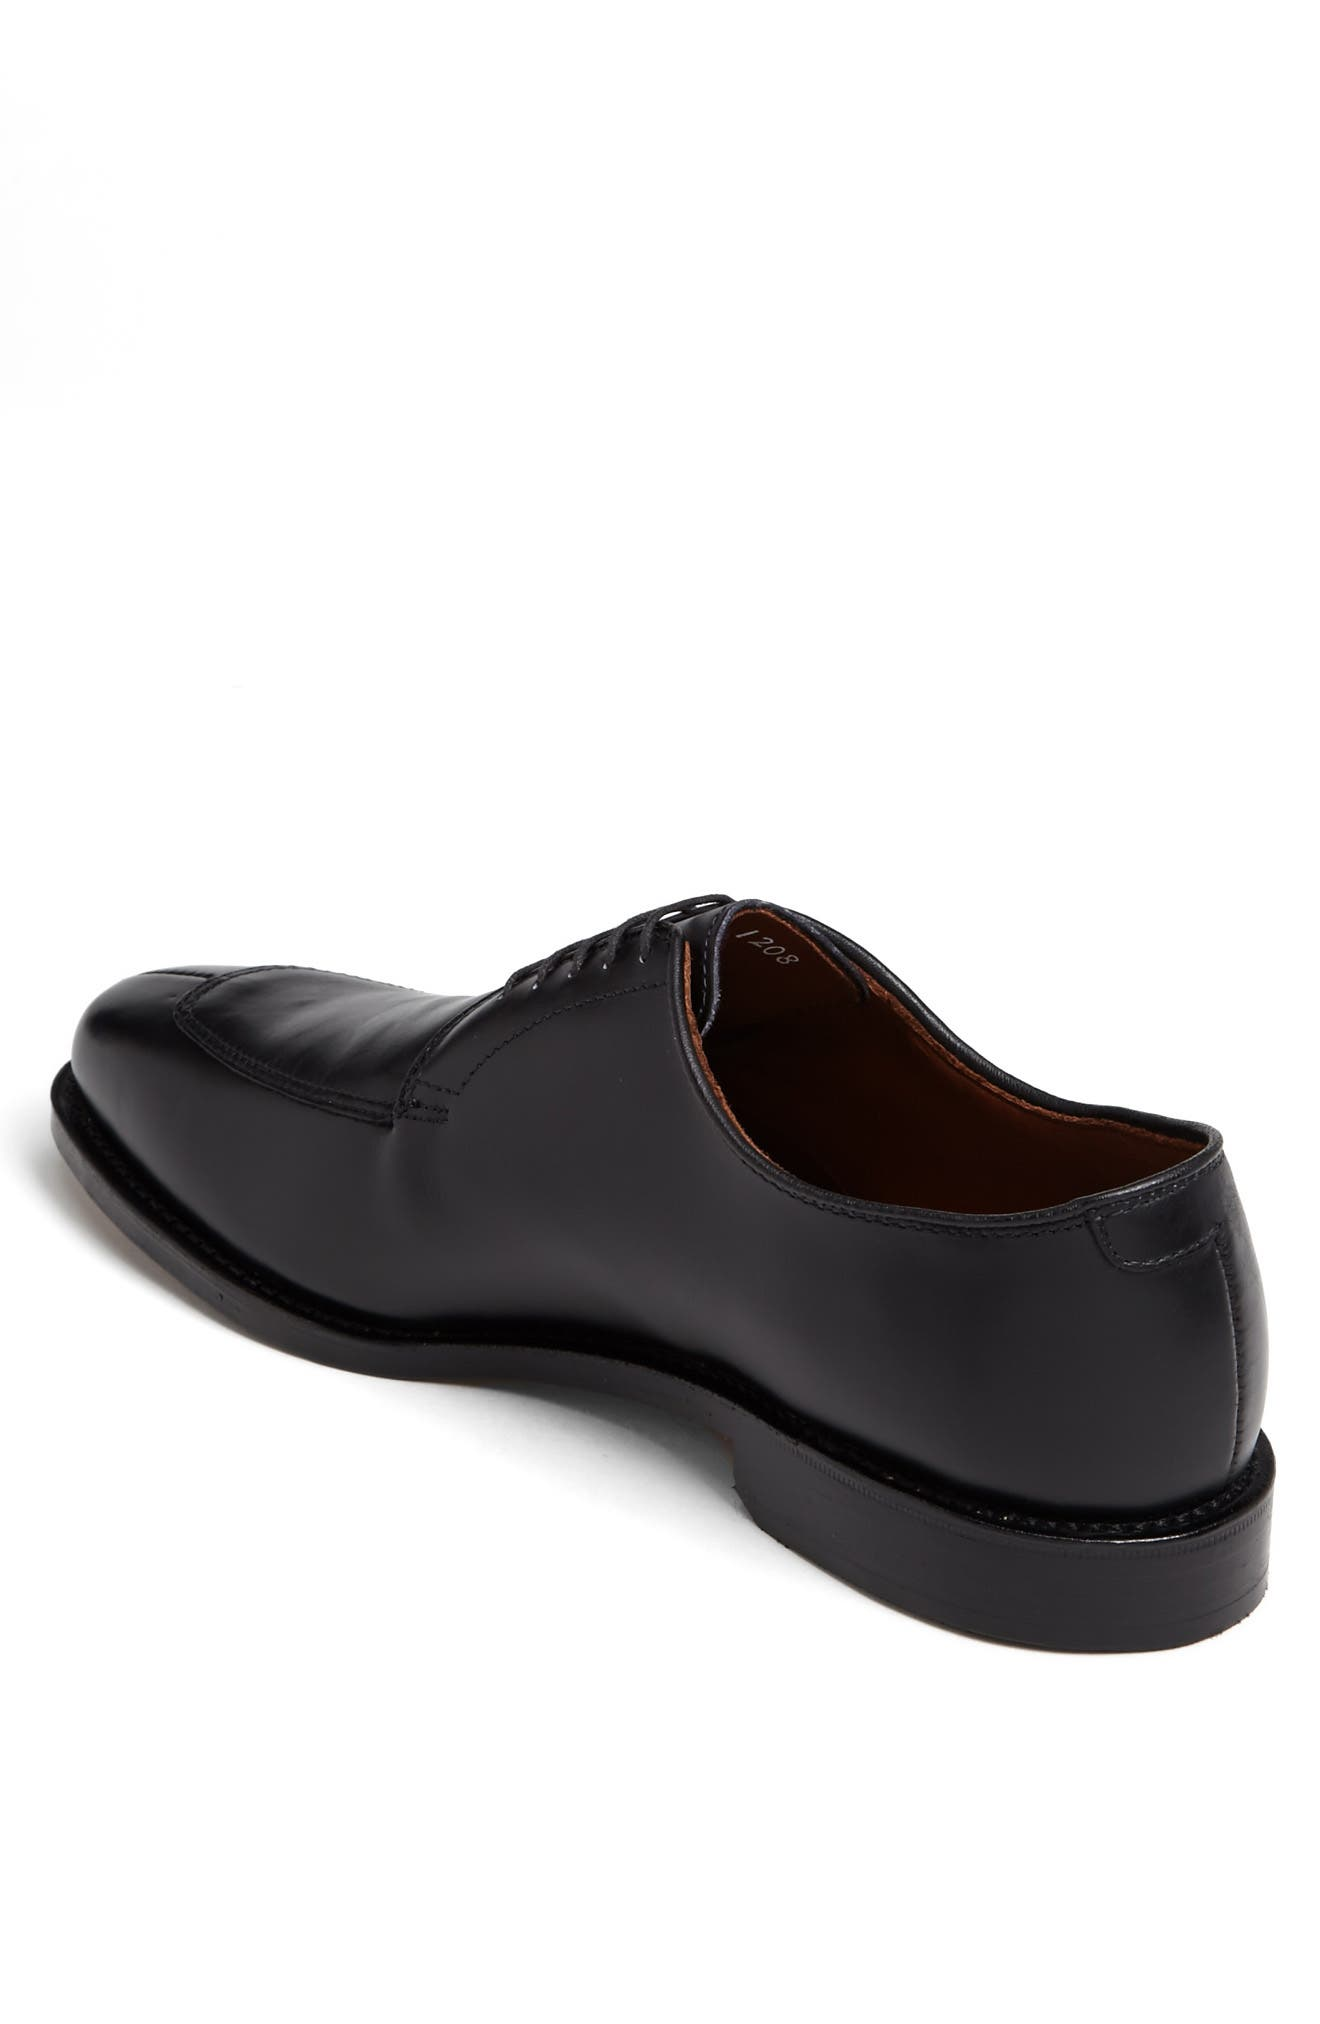 ALLEN EDMONDS, Delray Split Toe Derby, Alternate thumbnail 2, color, BLACK